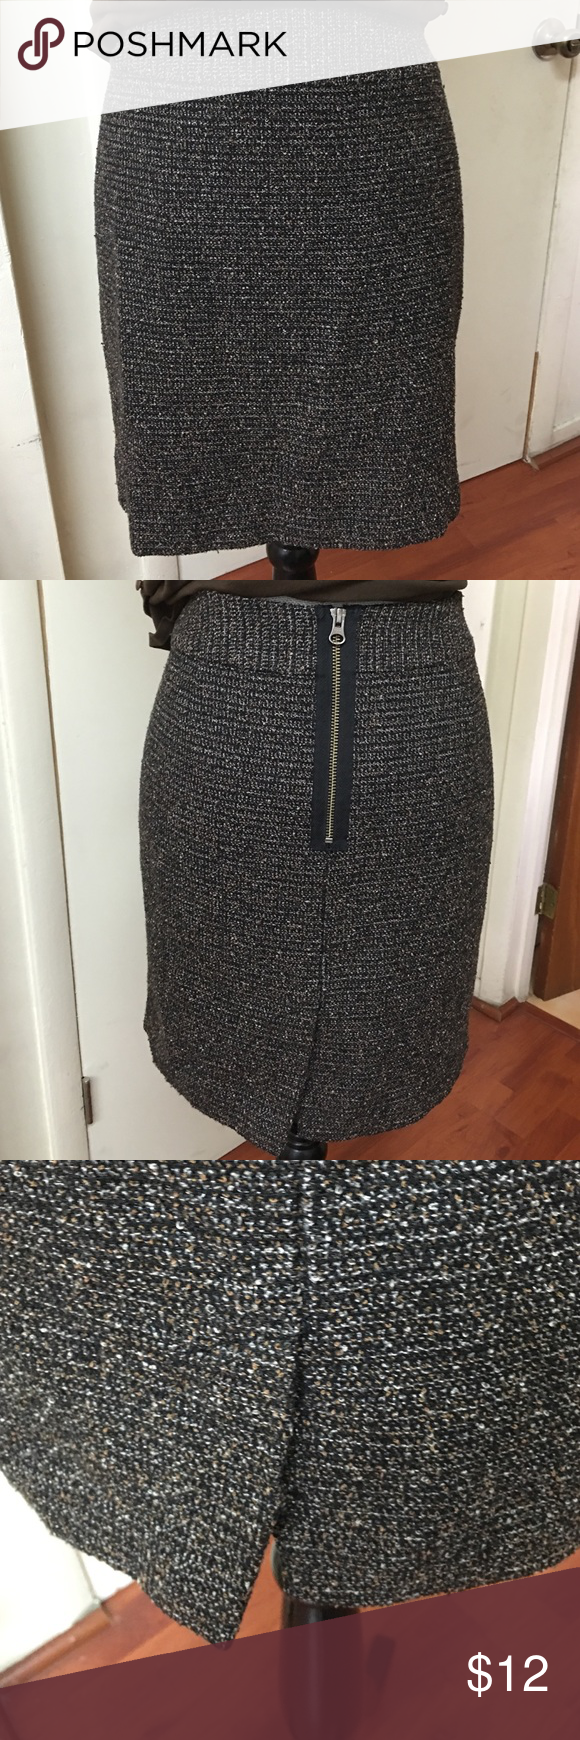 HALOGEN SKIRT Great skirt for fall pre❤️loved in excellent condition Halogen Skirts Mini